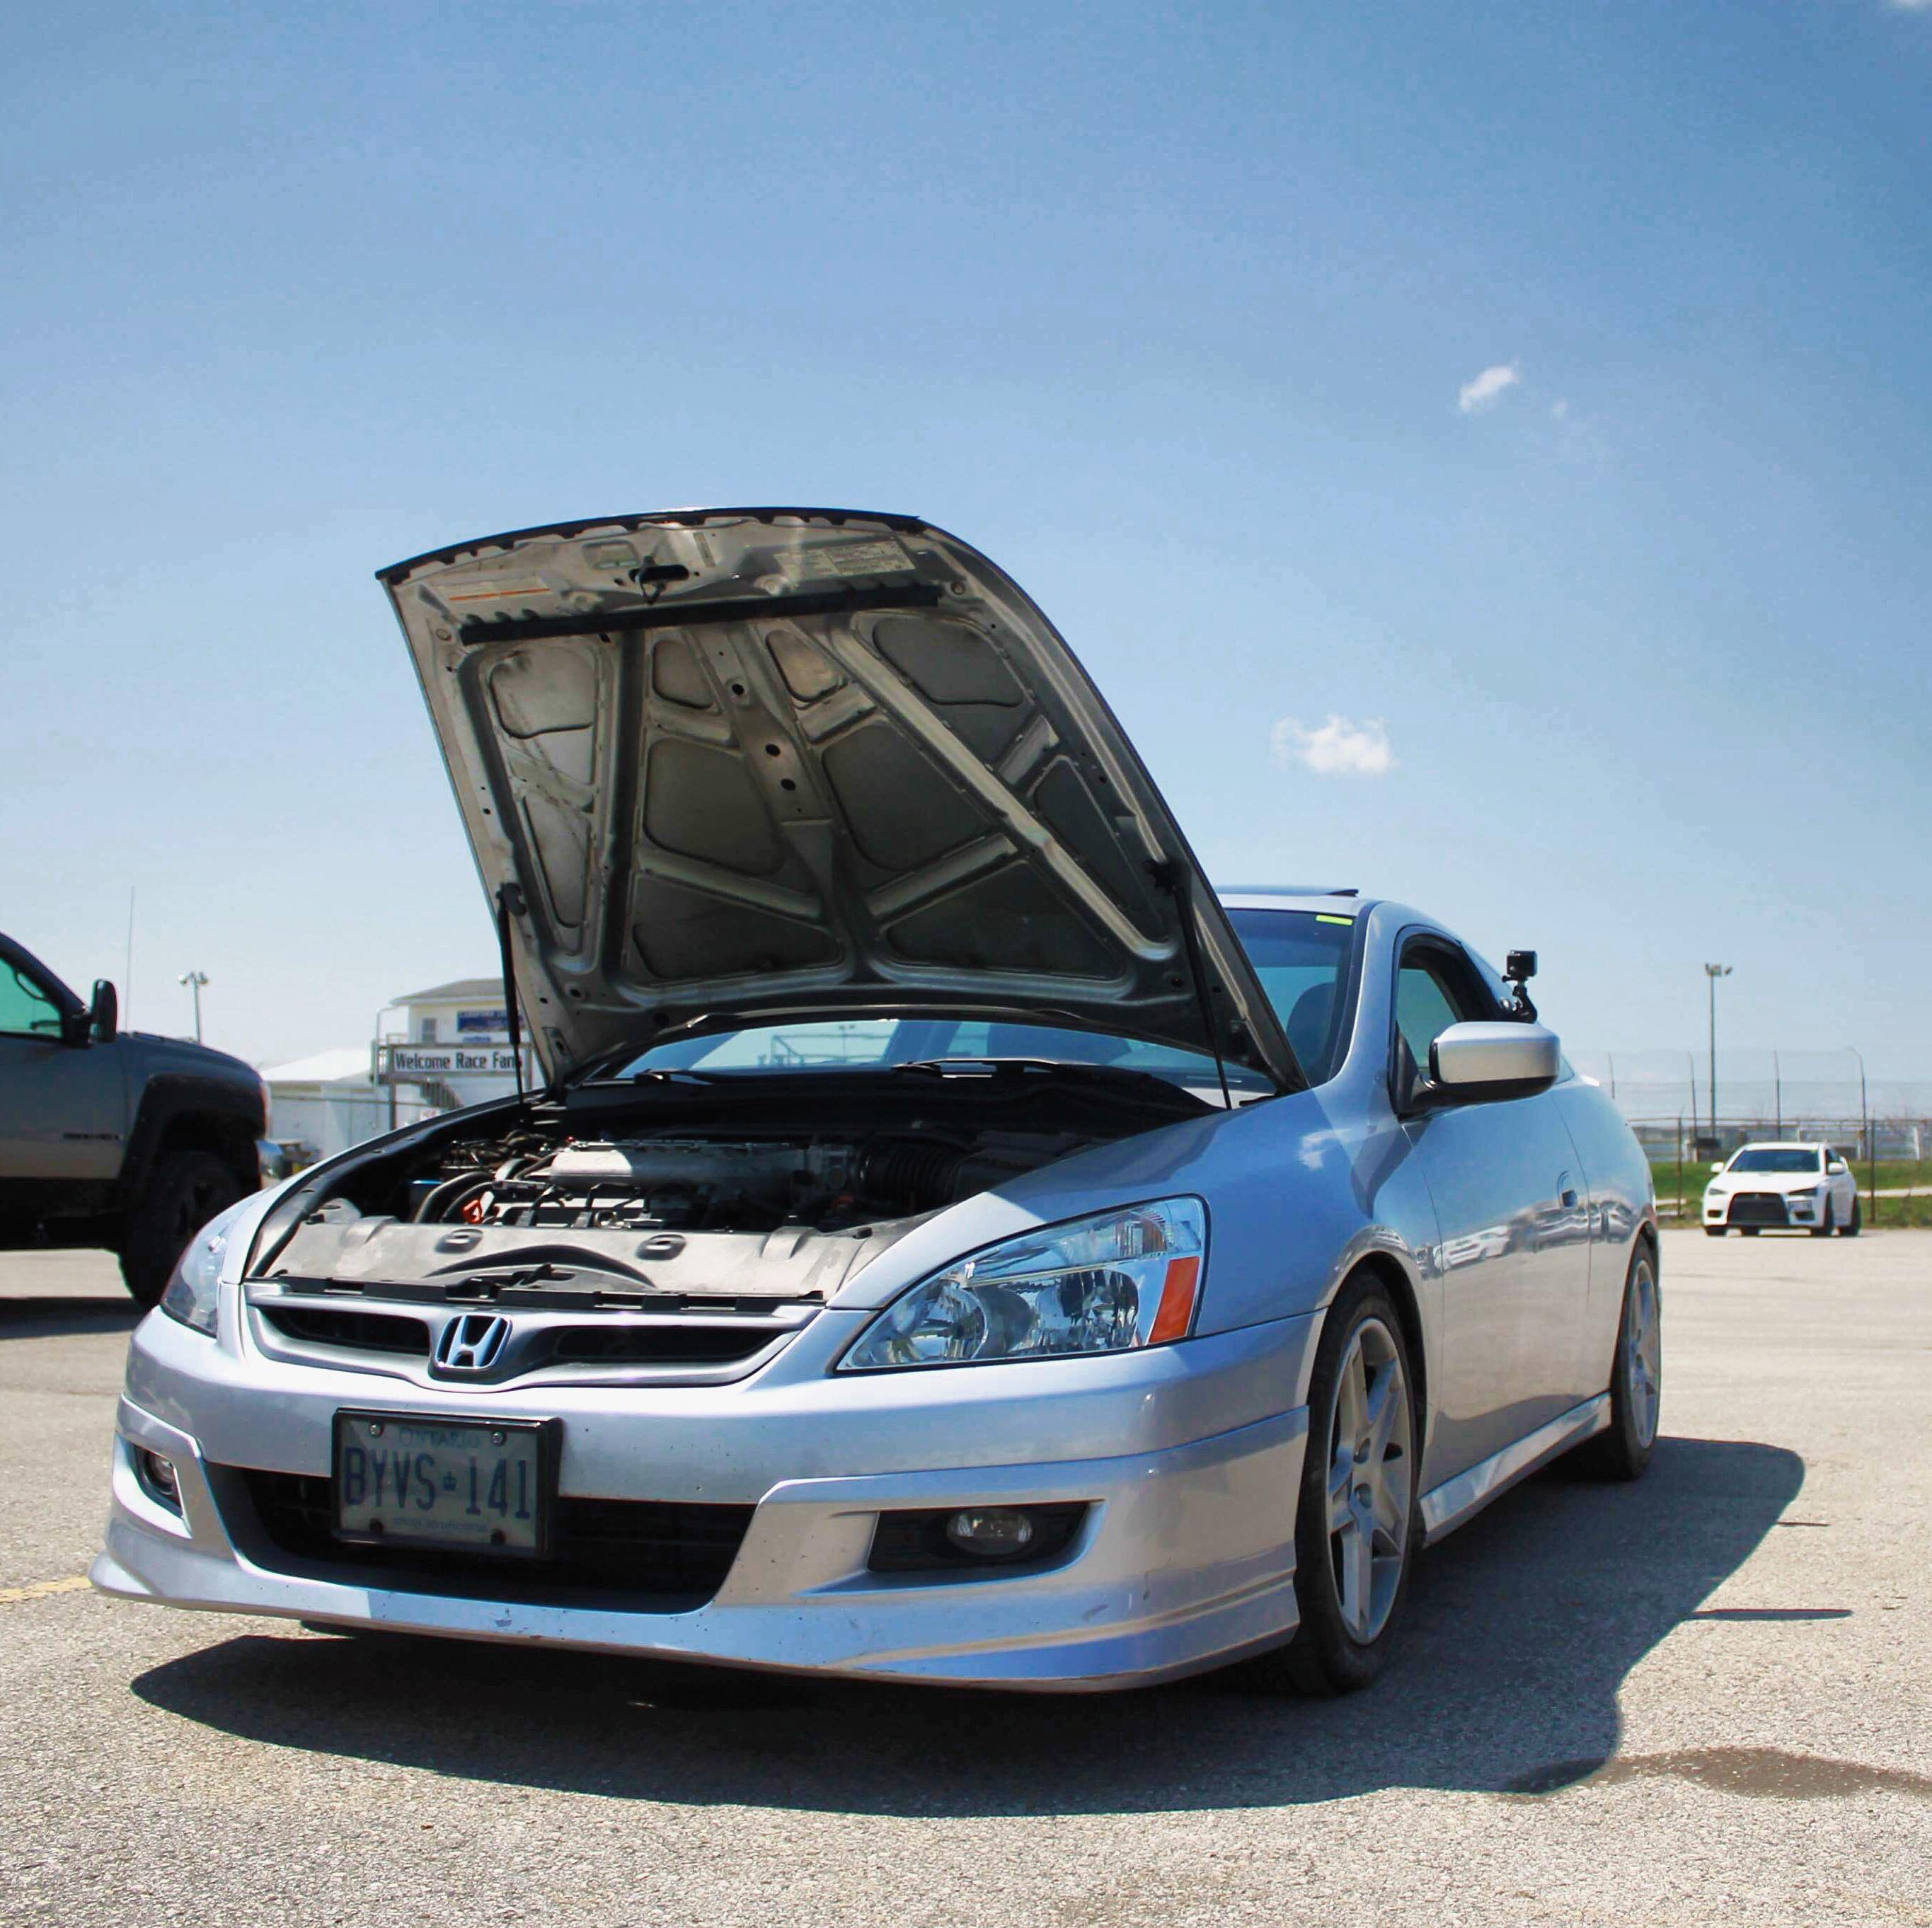 Celeias's Honda Accord V6 6 speed: Readers Rides: